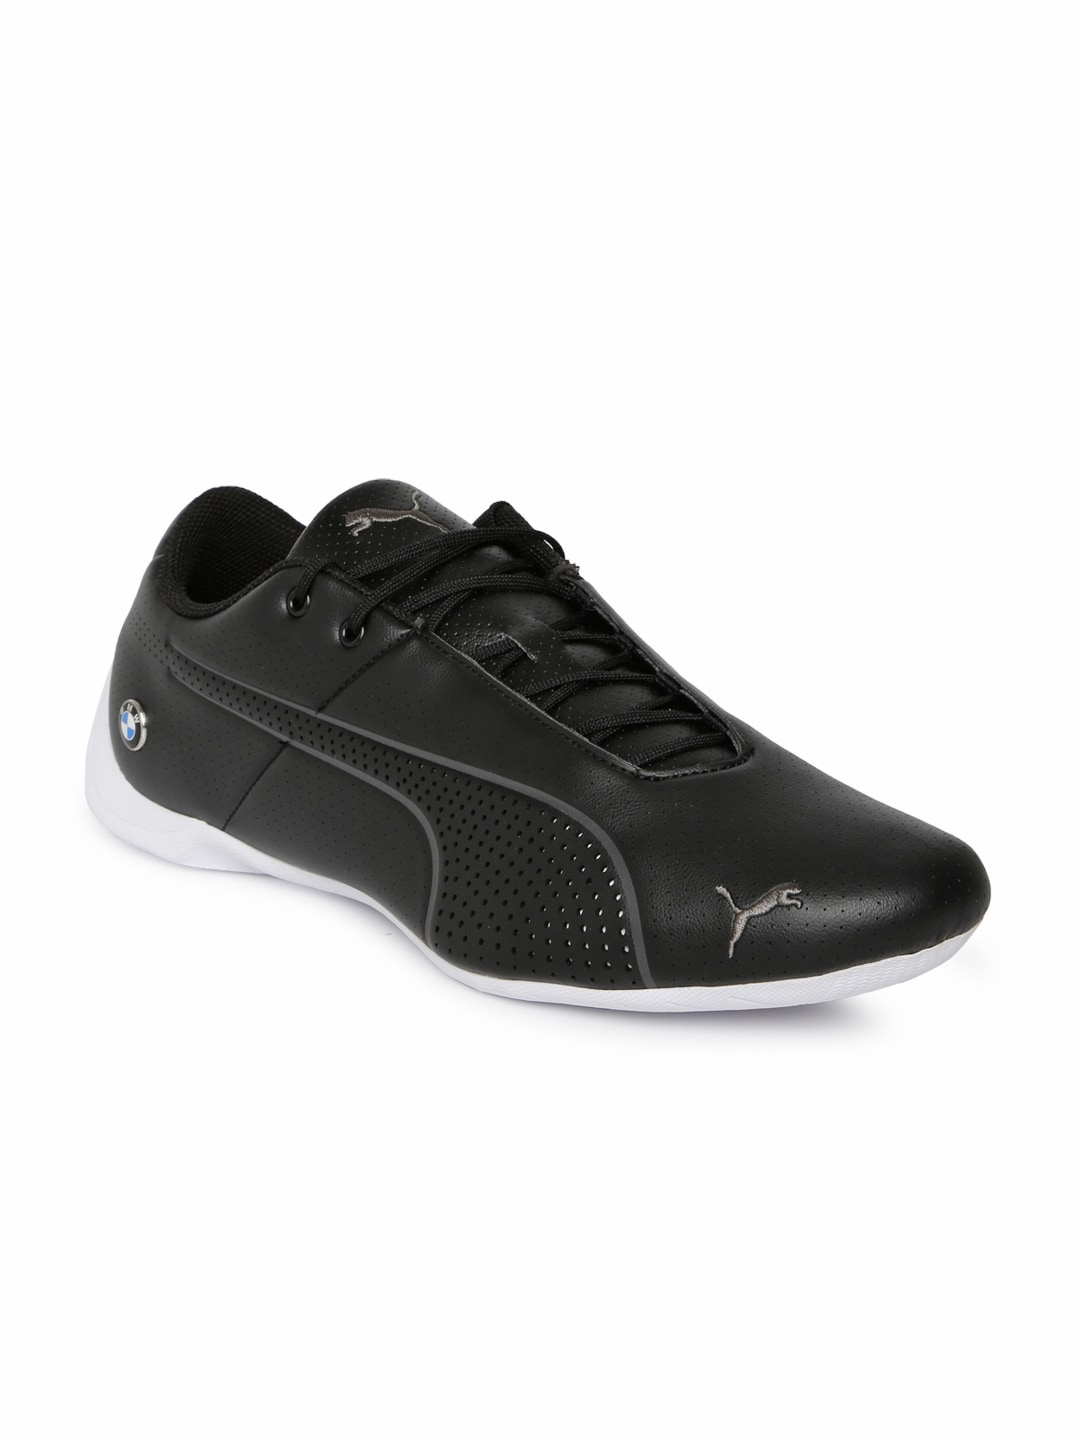 4efcf3c9b5c Puma Shoes - Buy Puma Shoes for Men   Women Online in India